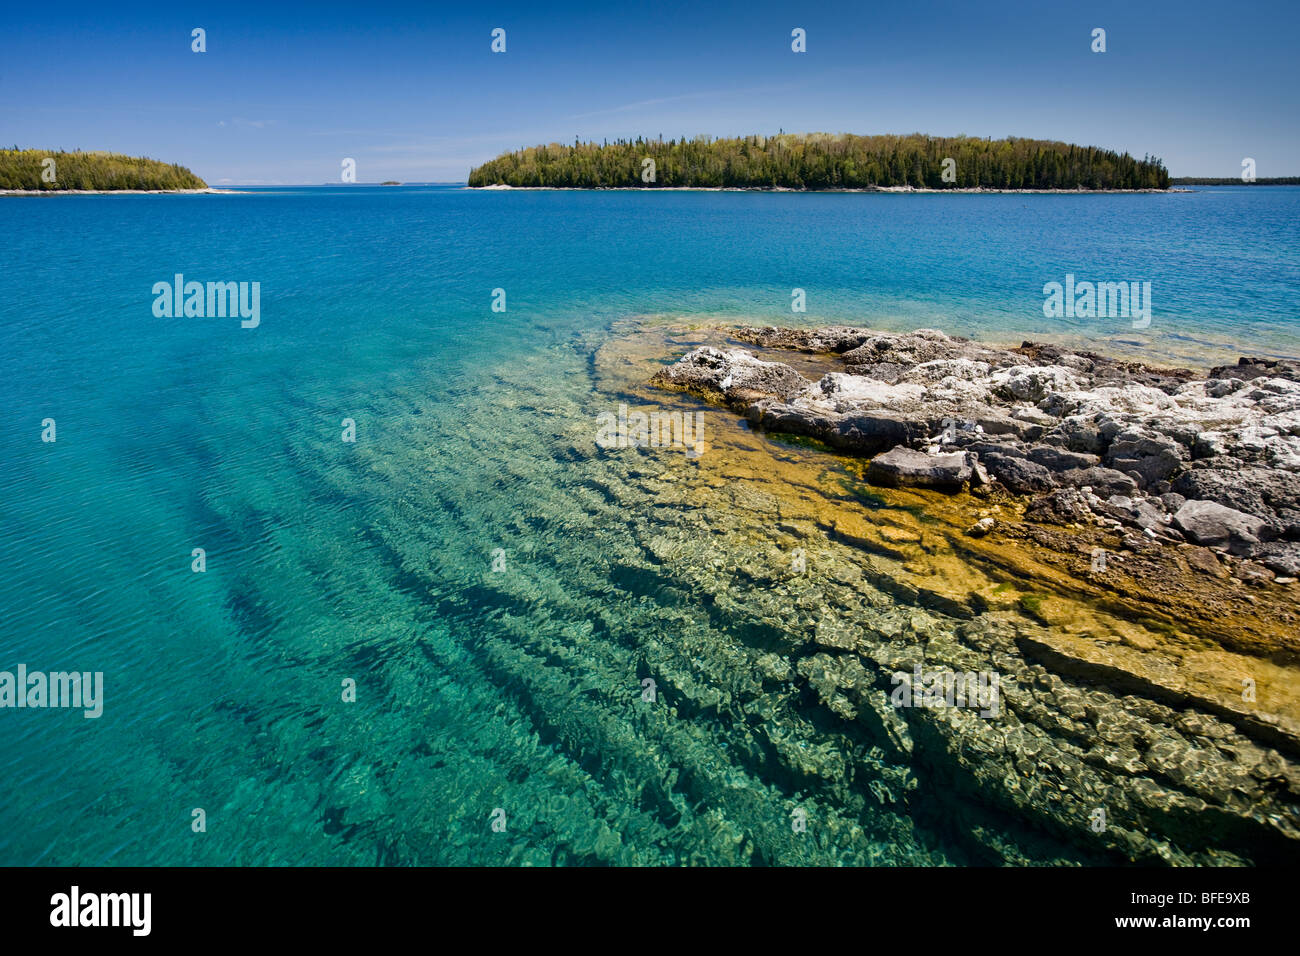 Small island in the fathom five national marine park lake huron small island in the fathom five national marine park lake huron ontario canada sciox Gallery